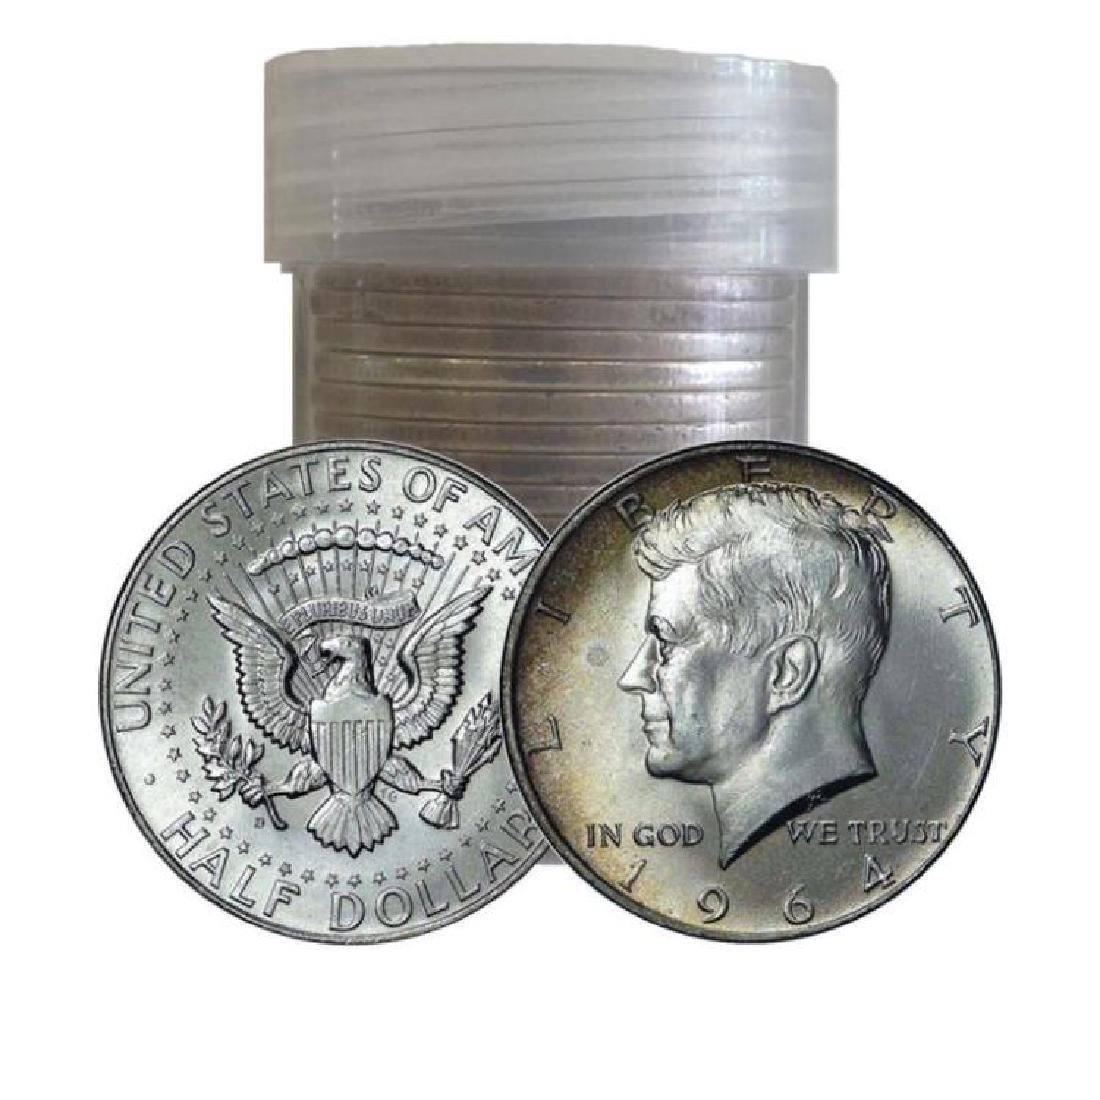 Roll of (20) 1964 Kennedy Half Dollars